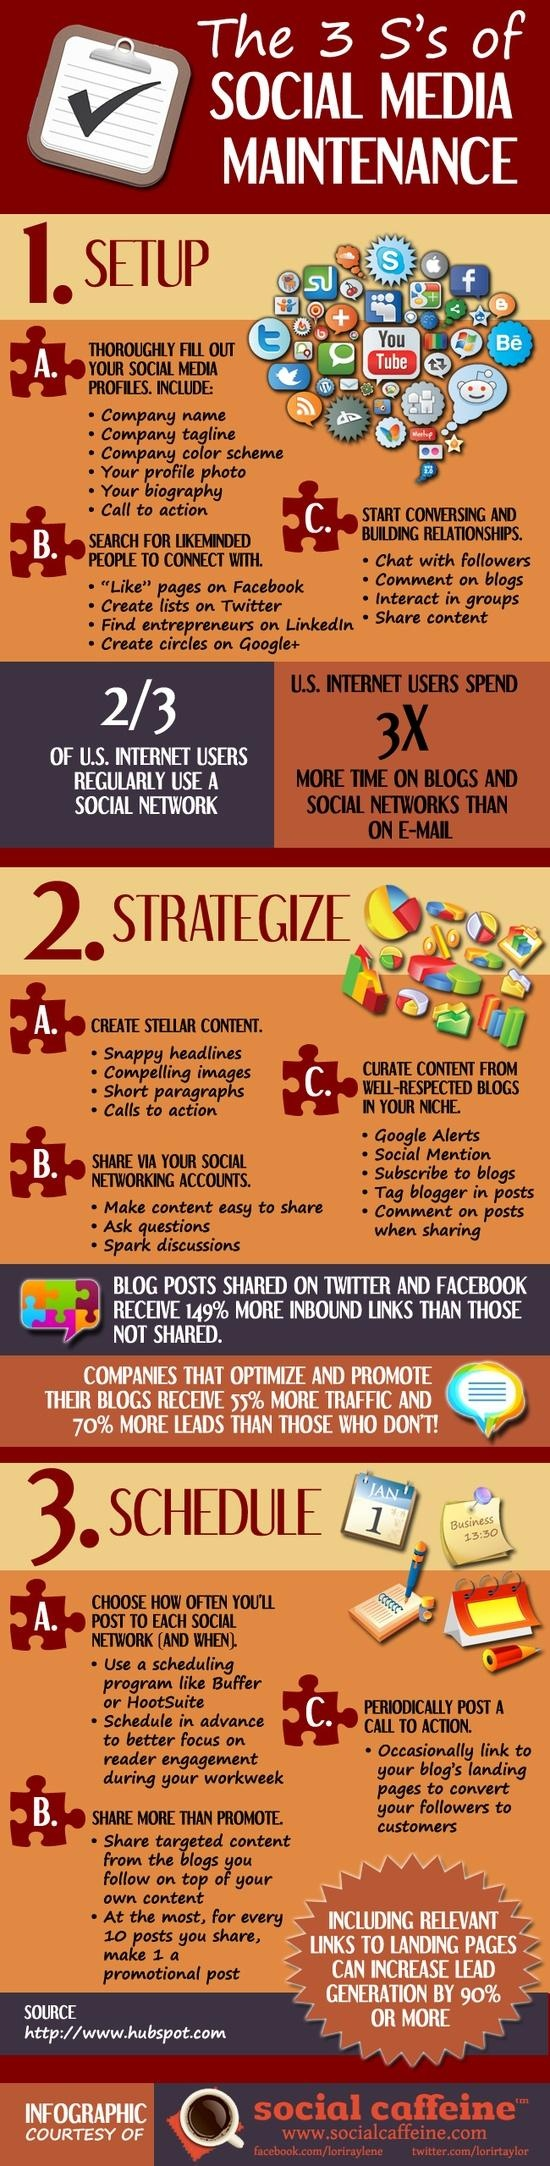 Awesome! Digital Marketing Infographic Collections Aug 2016